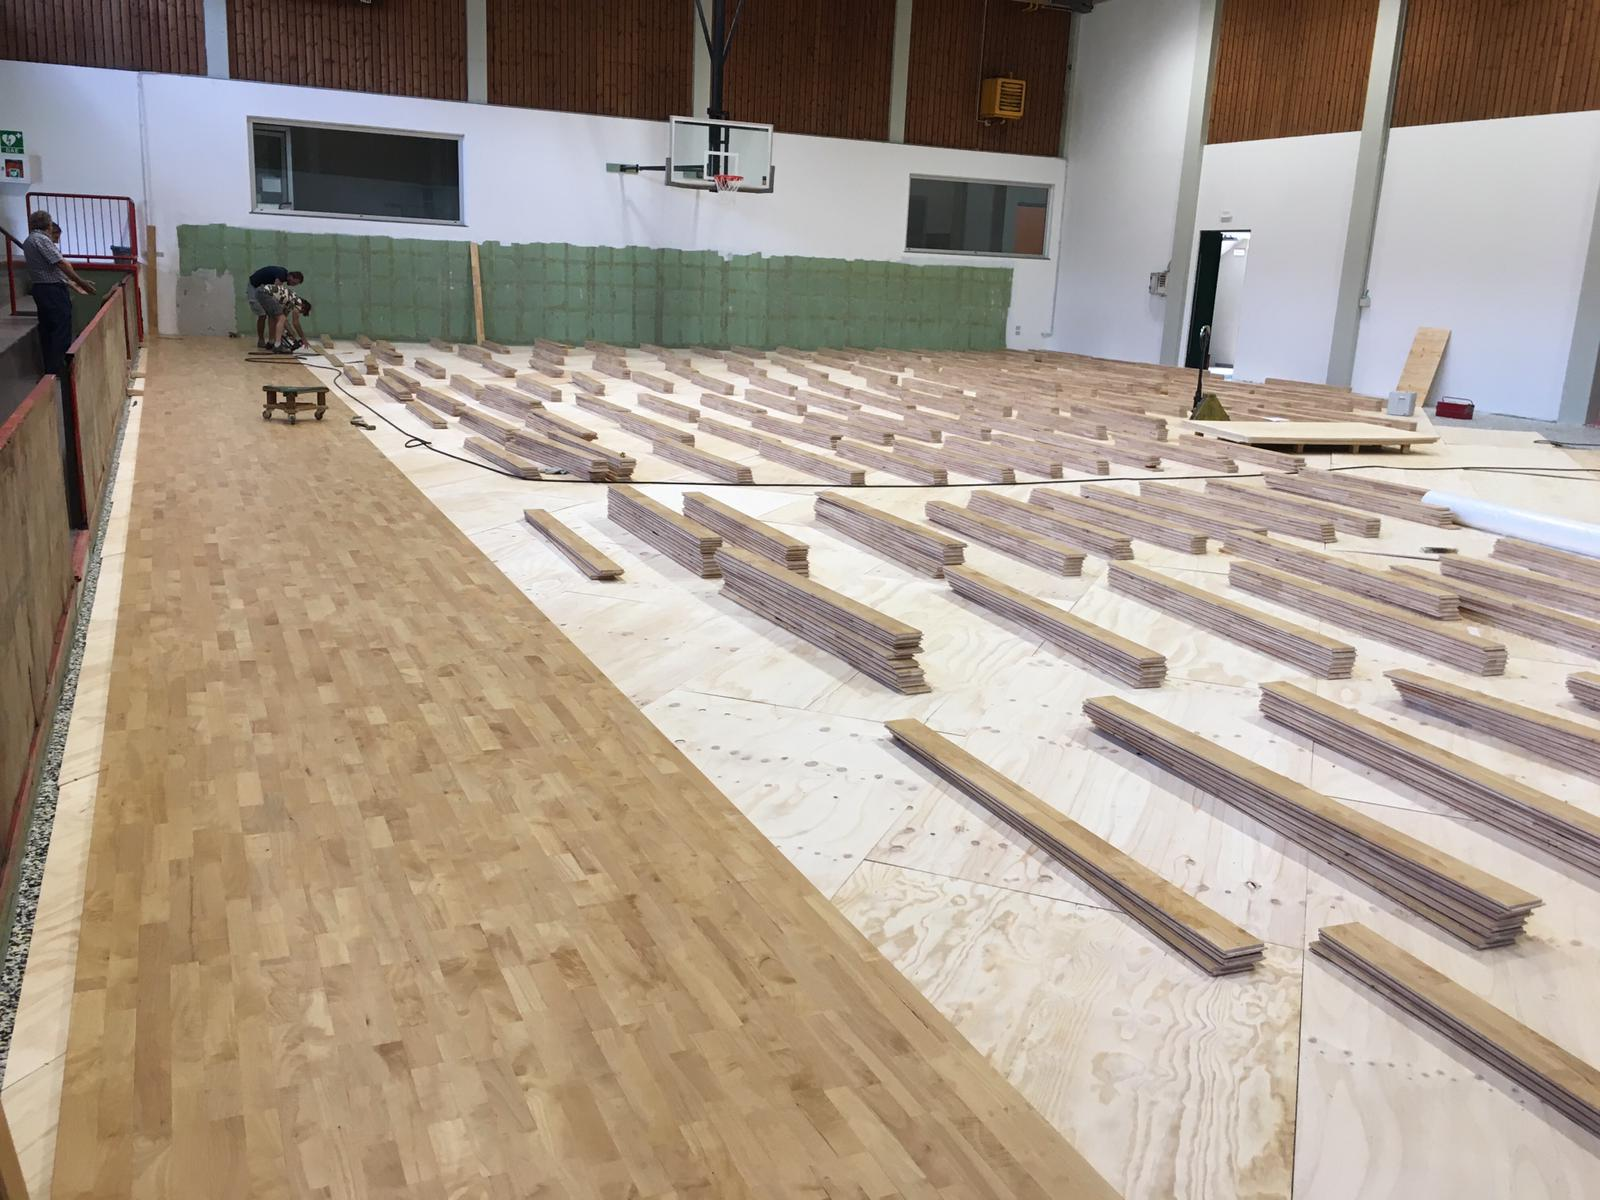 The laying of the new sports parquet